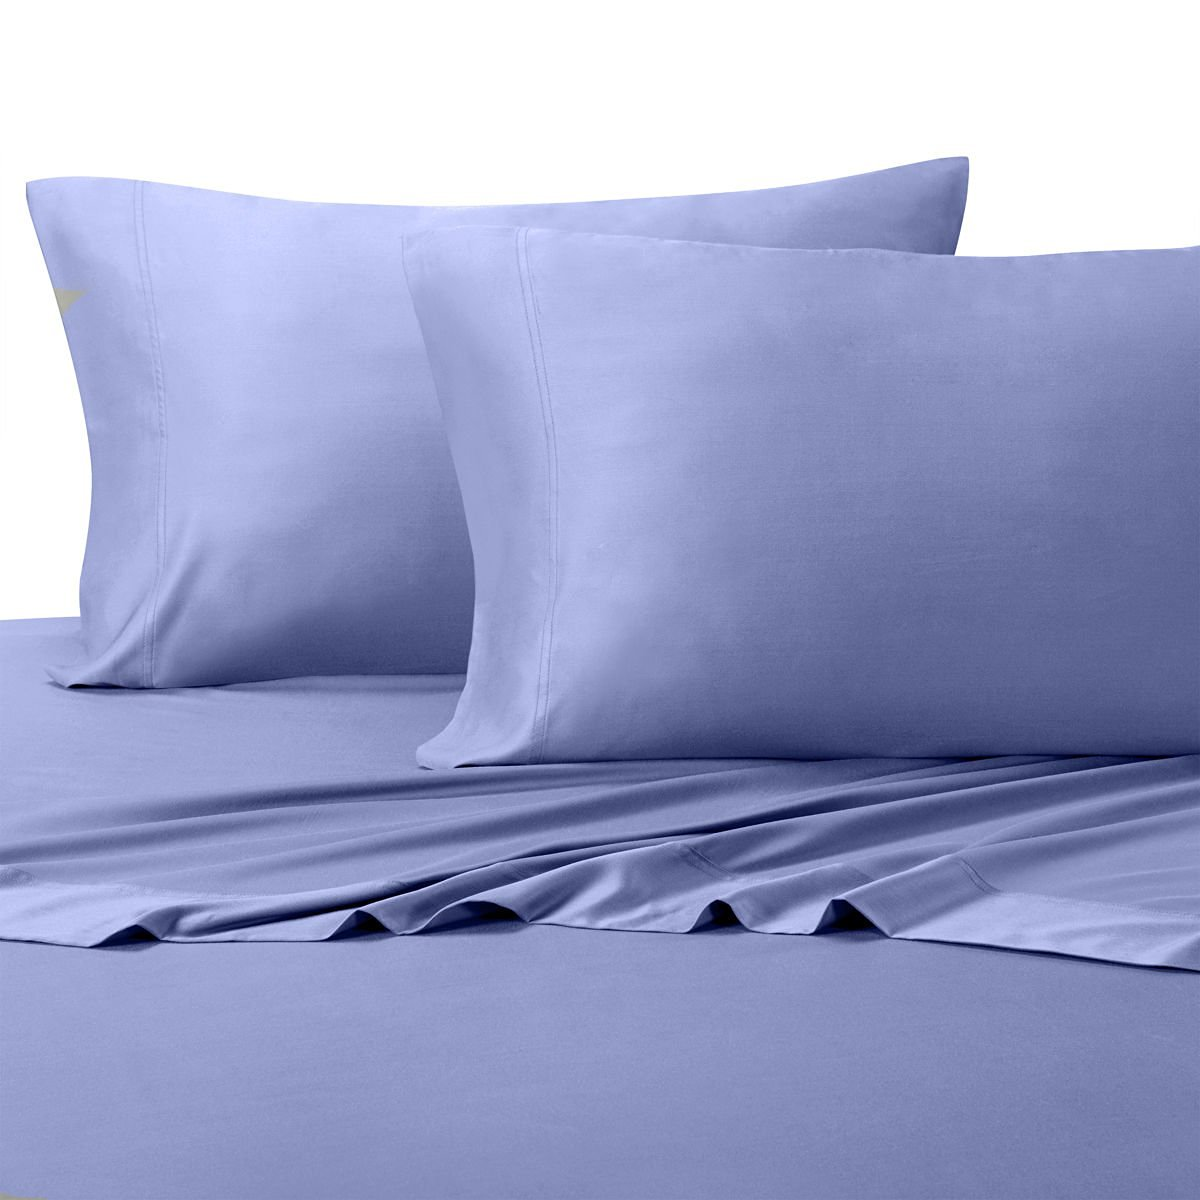 "Silky and Soft Bamboo Blend Sheets, 60% Viscose from Bamboo / 40% Cotton Hybird Weave Sheet Set, Hypo-Allergenic, 18"" Pockets, Periwinkle, 3 Piece Twin Extra Long (Twin XL) Size Deep Pocket Sheet Set"